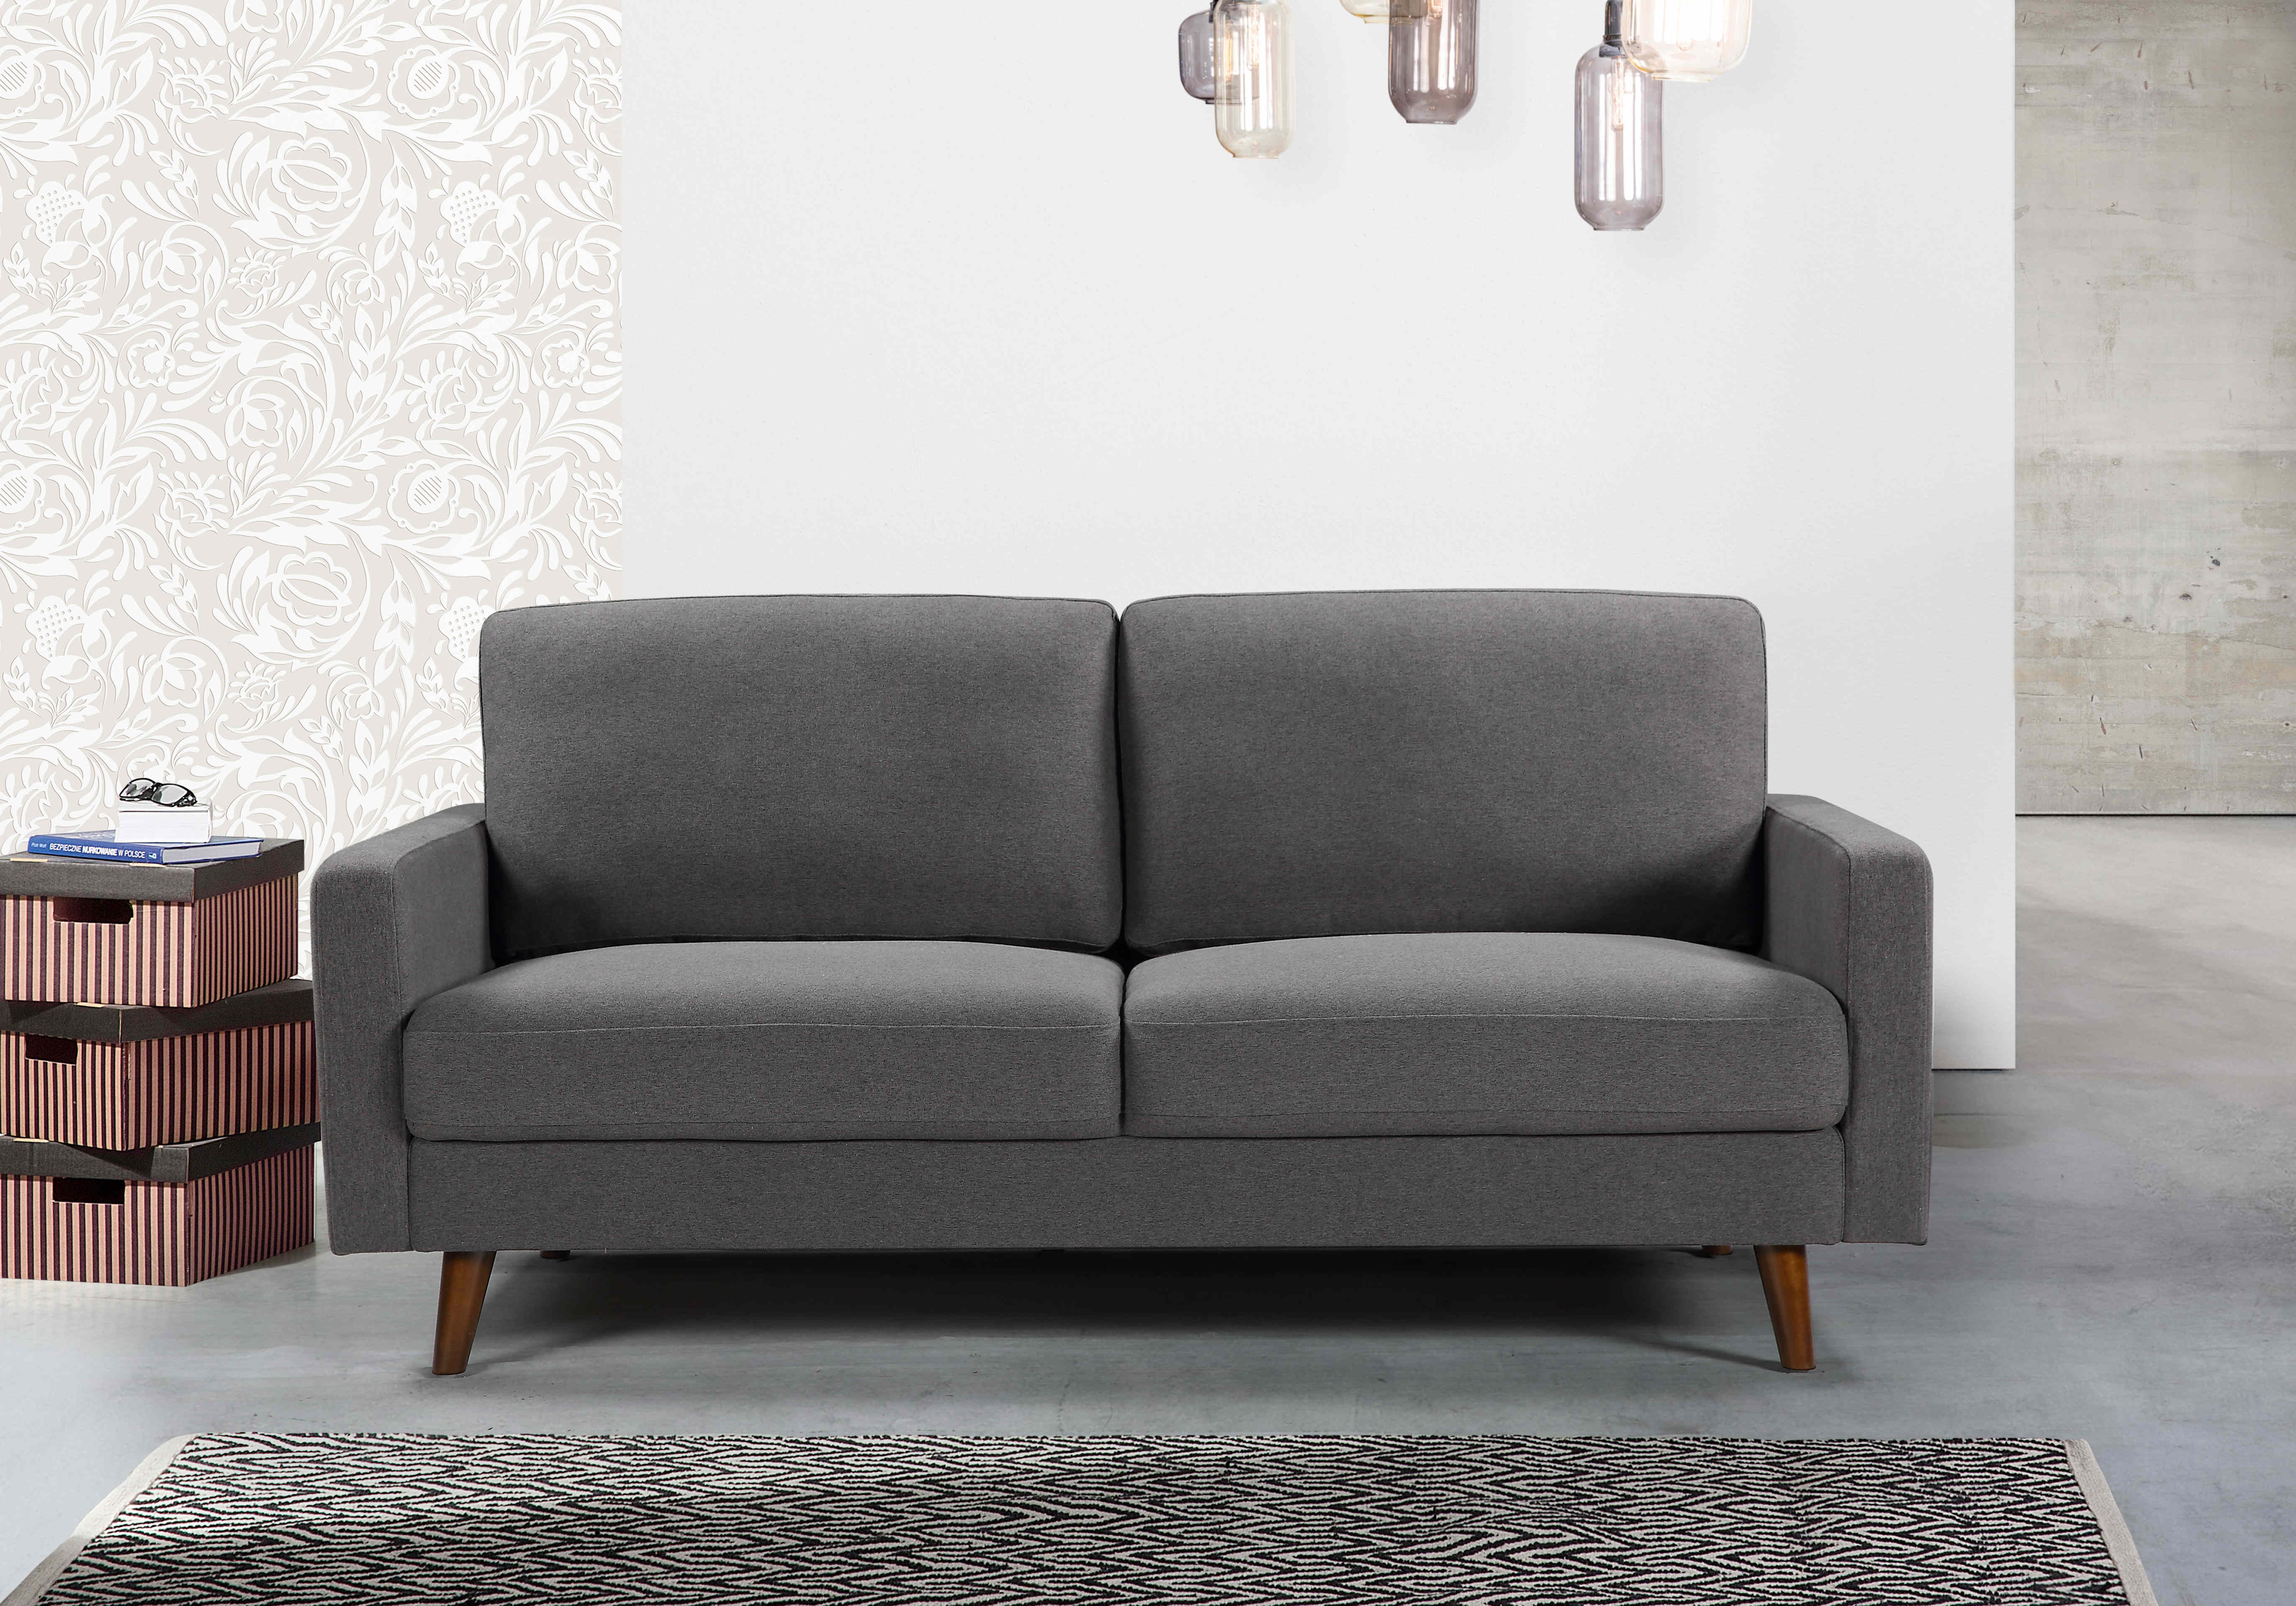 Valancy 4 Seater Couch Fabric/Faux Leather